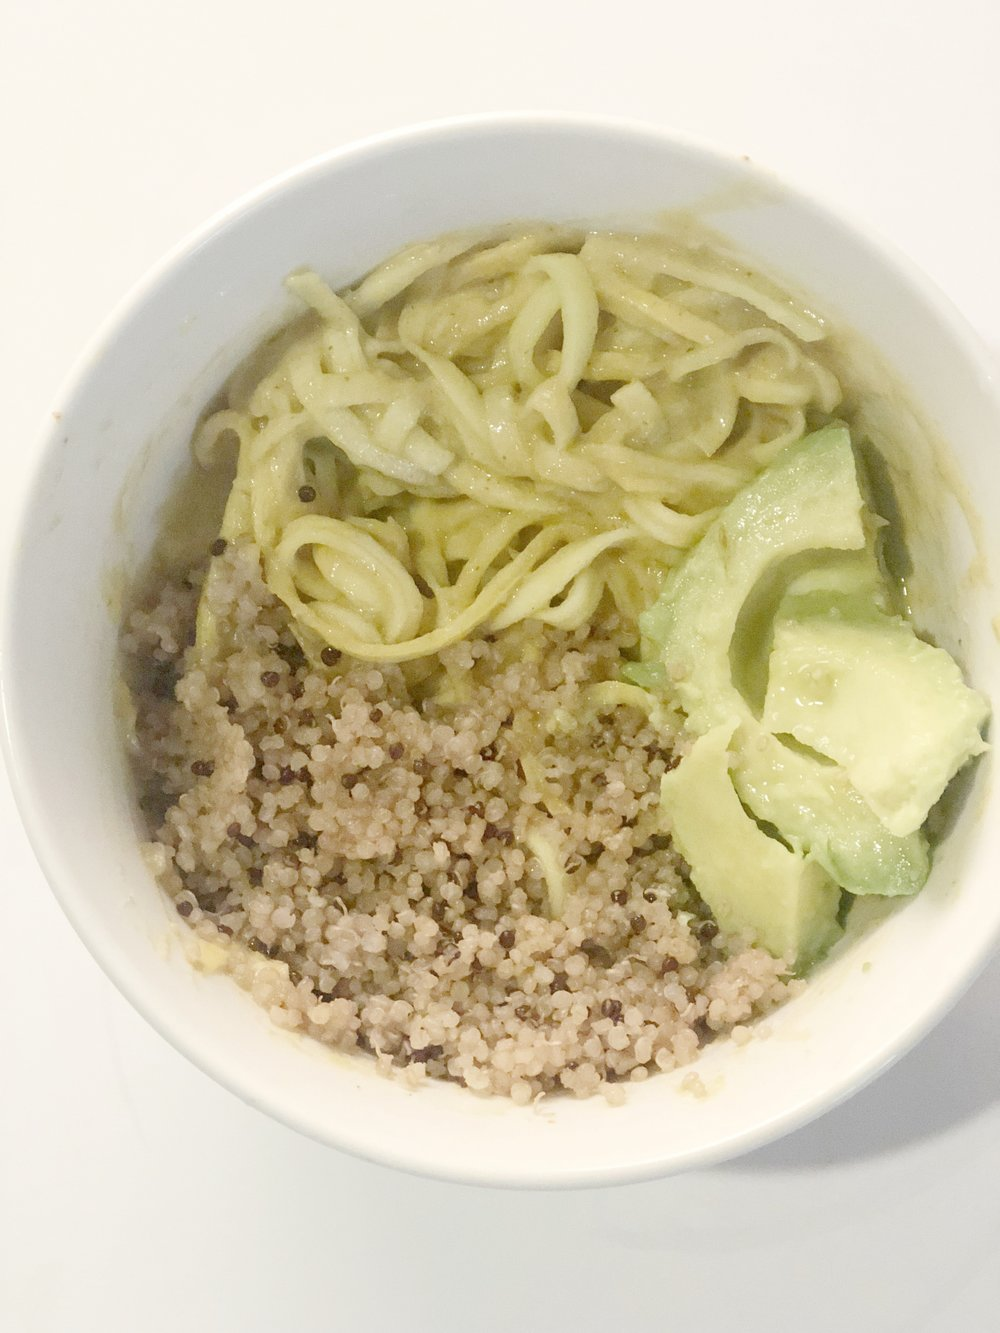 Protein Bowl   Quinoa, avocado, zuchinni noodles, lemon, lime